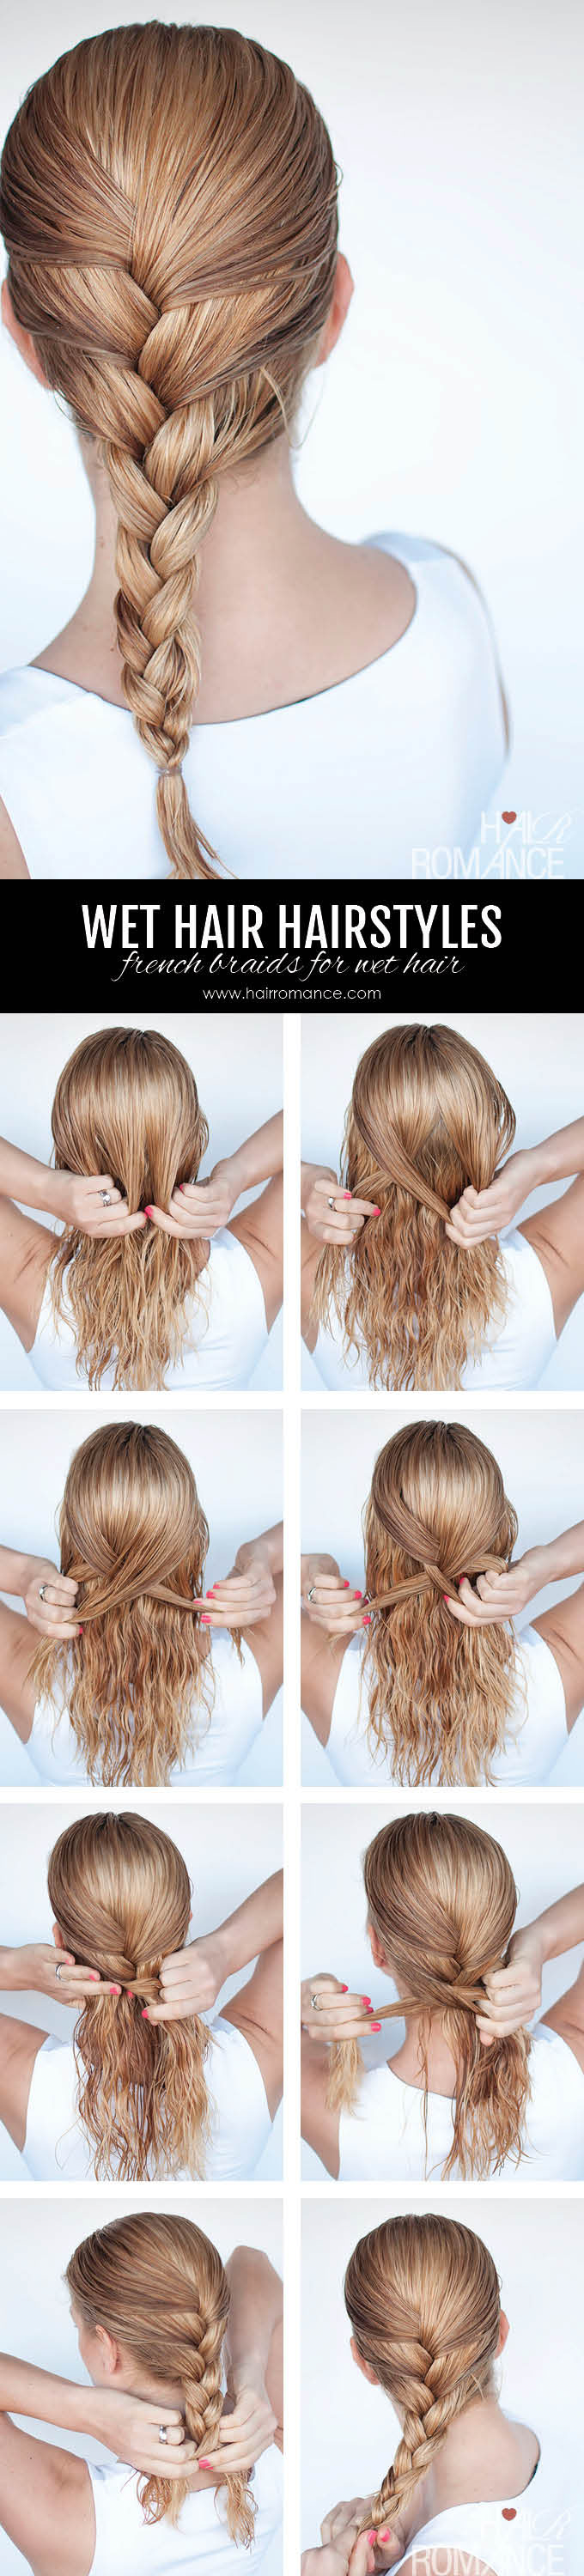 Hairstyles for wet hair: 12 simple braid tutorials you can wear in